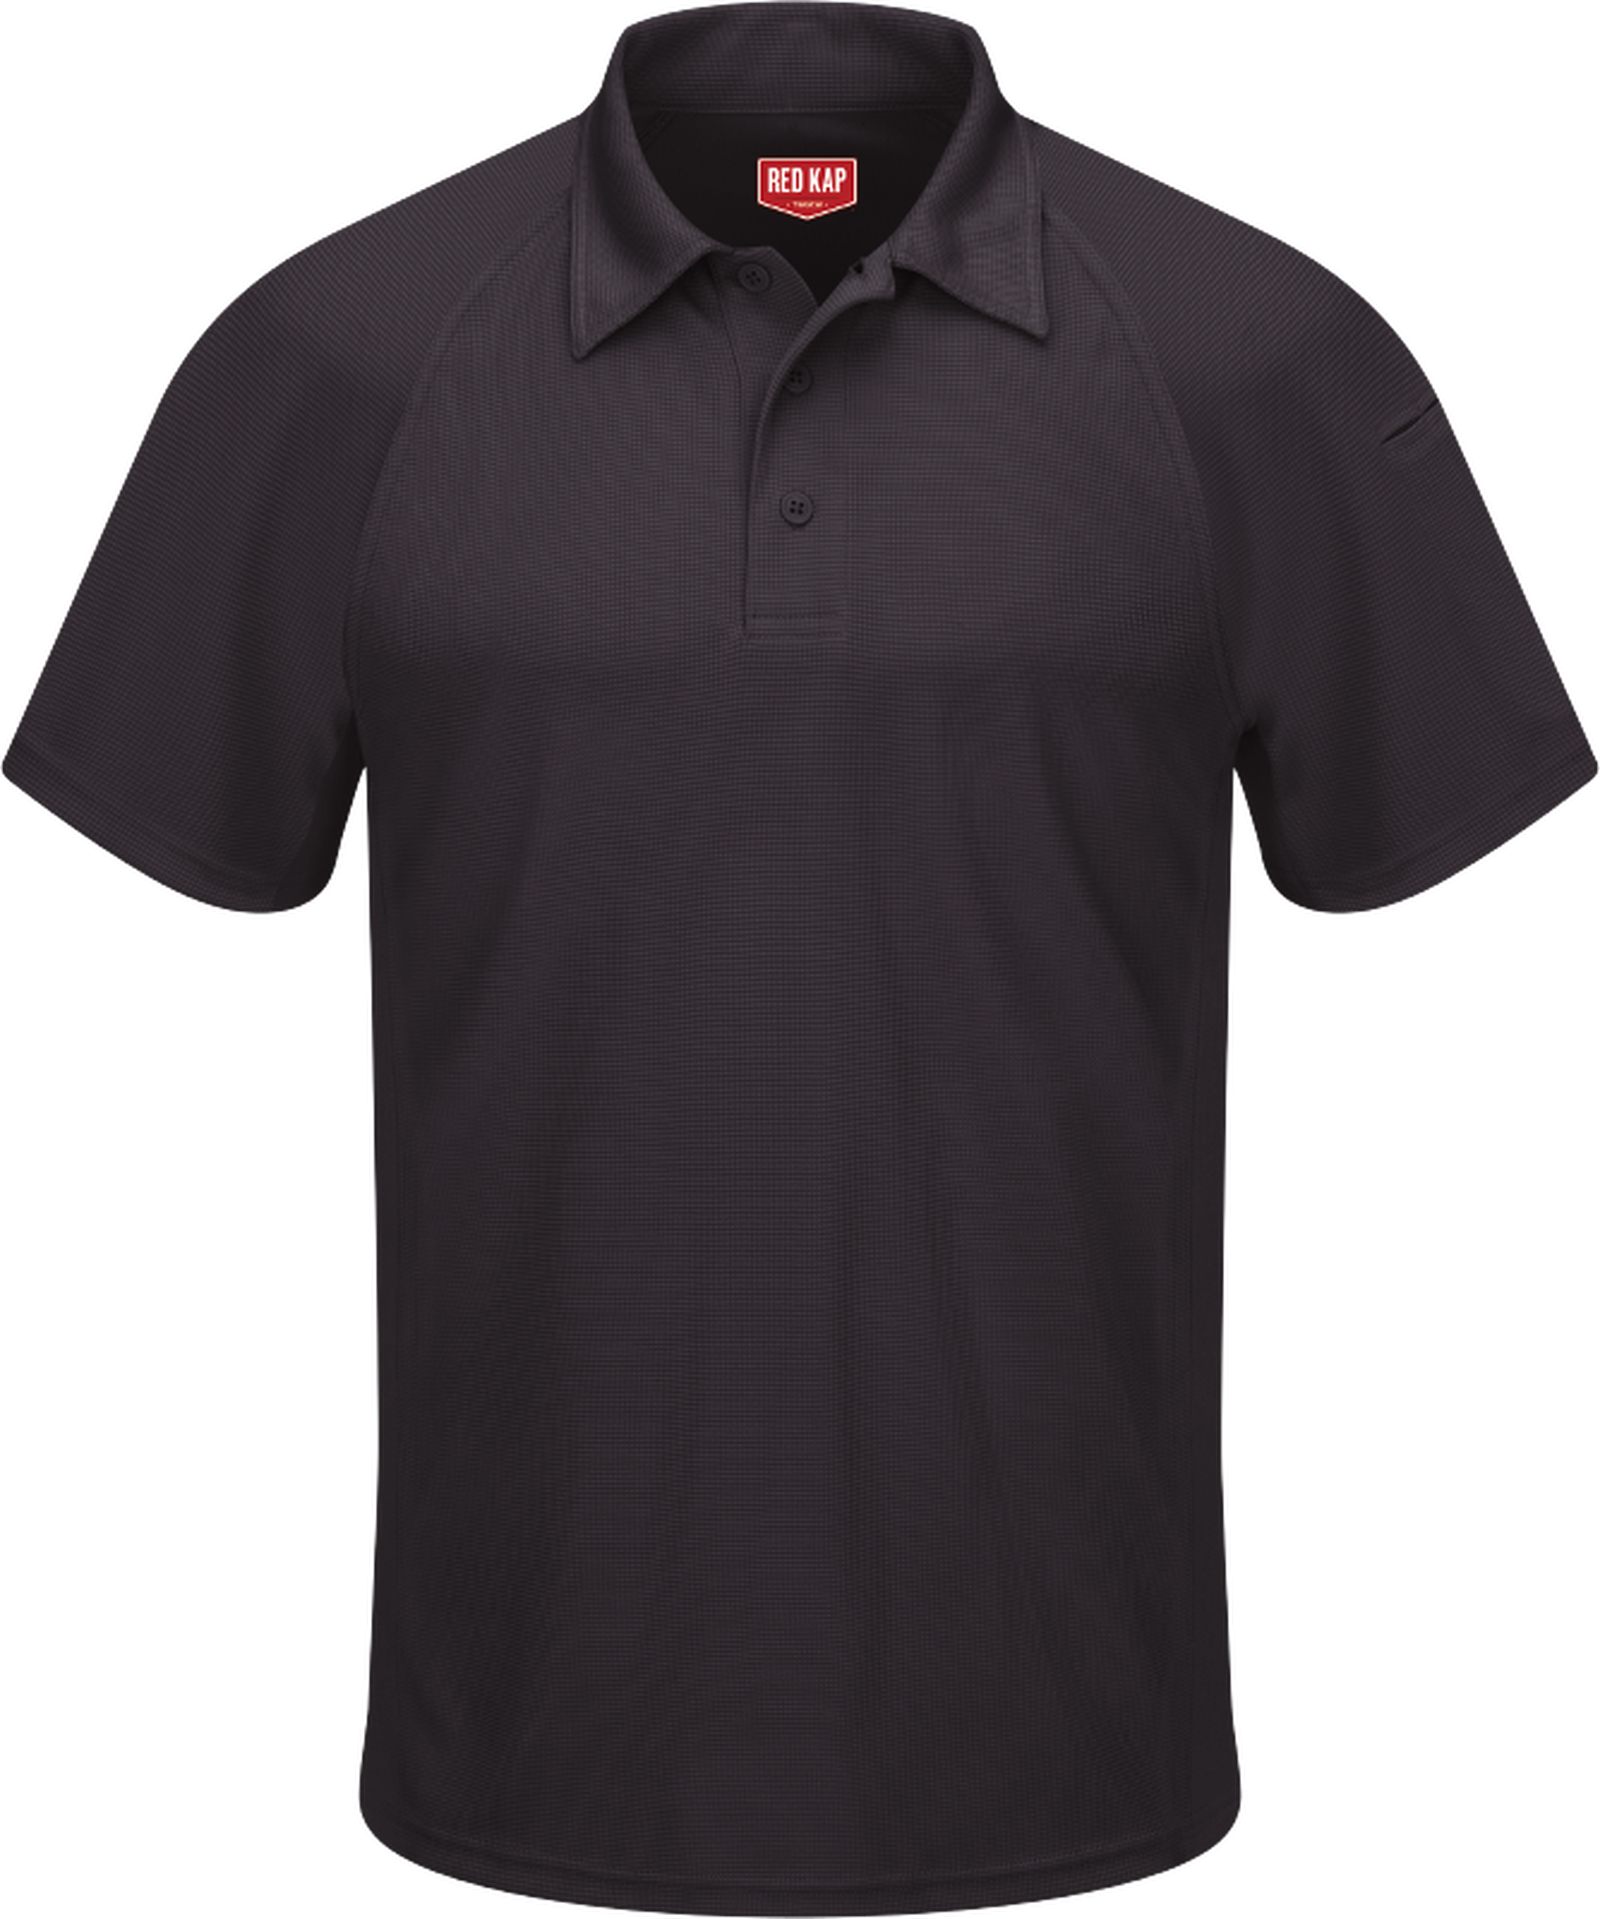 Men's Short Sleeve Performance Knit® Flex Series Men's Active Polo